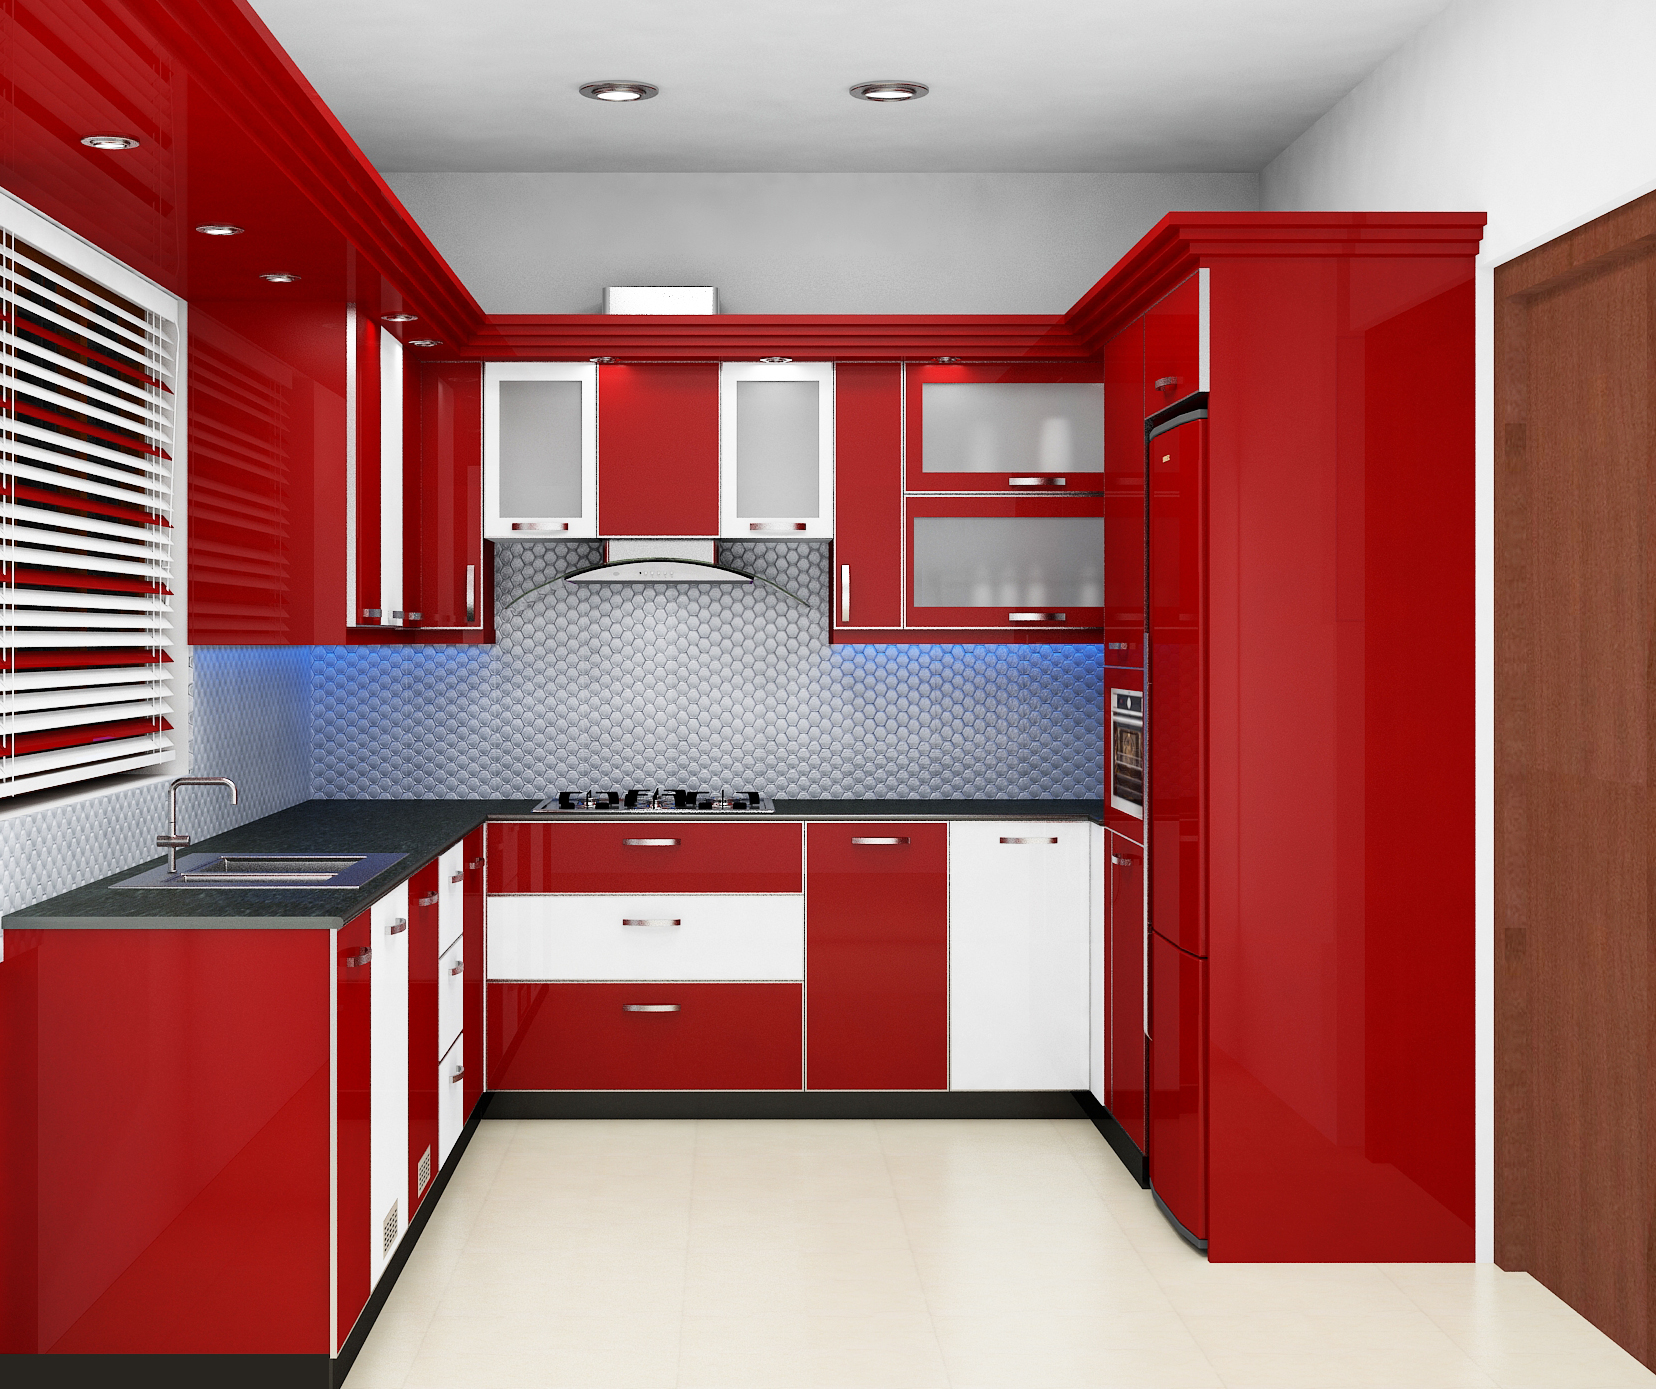 Exemplary and amazing modular kitchen home interior design for Amazing house interior designs